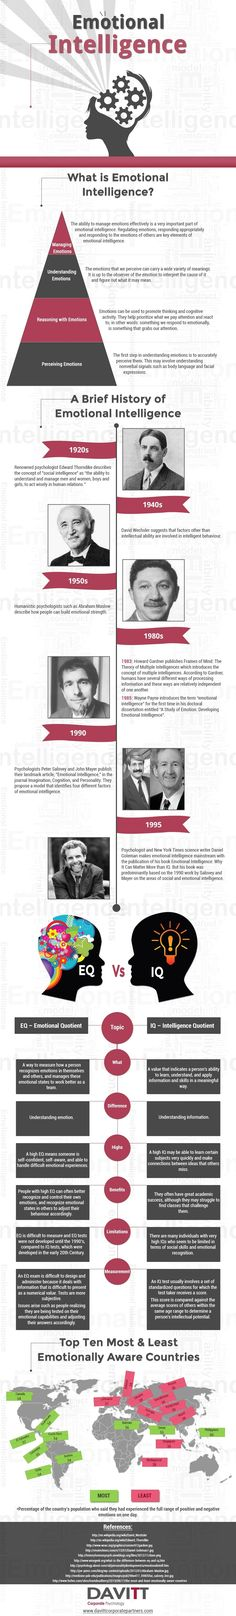 Emotional Intelligence #Infographic #EI #Health #History